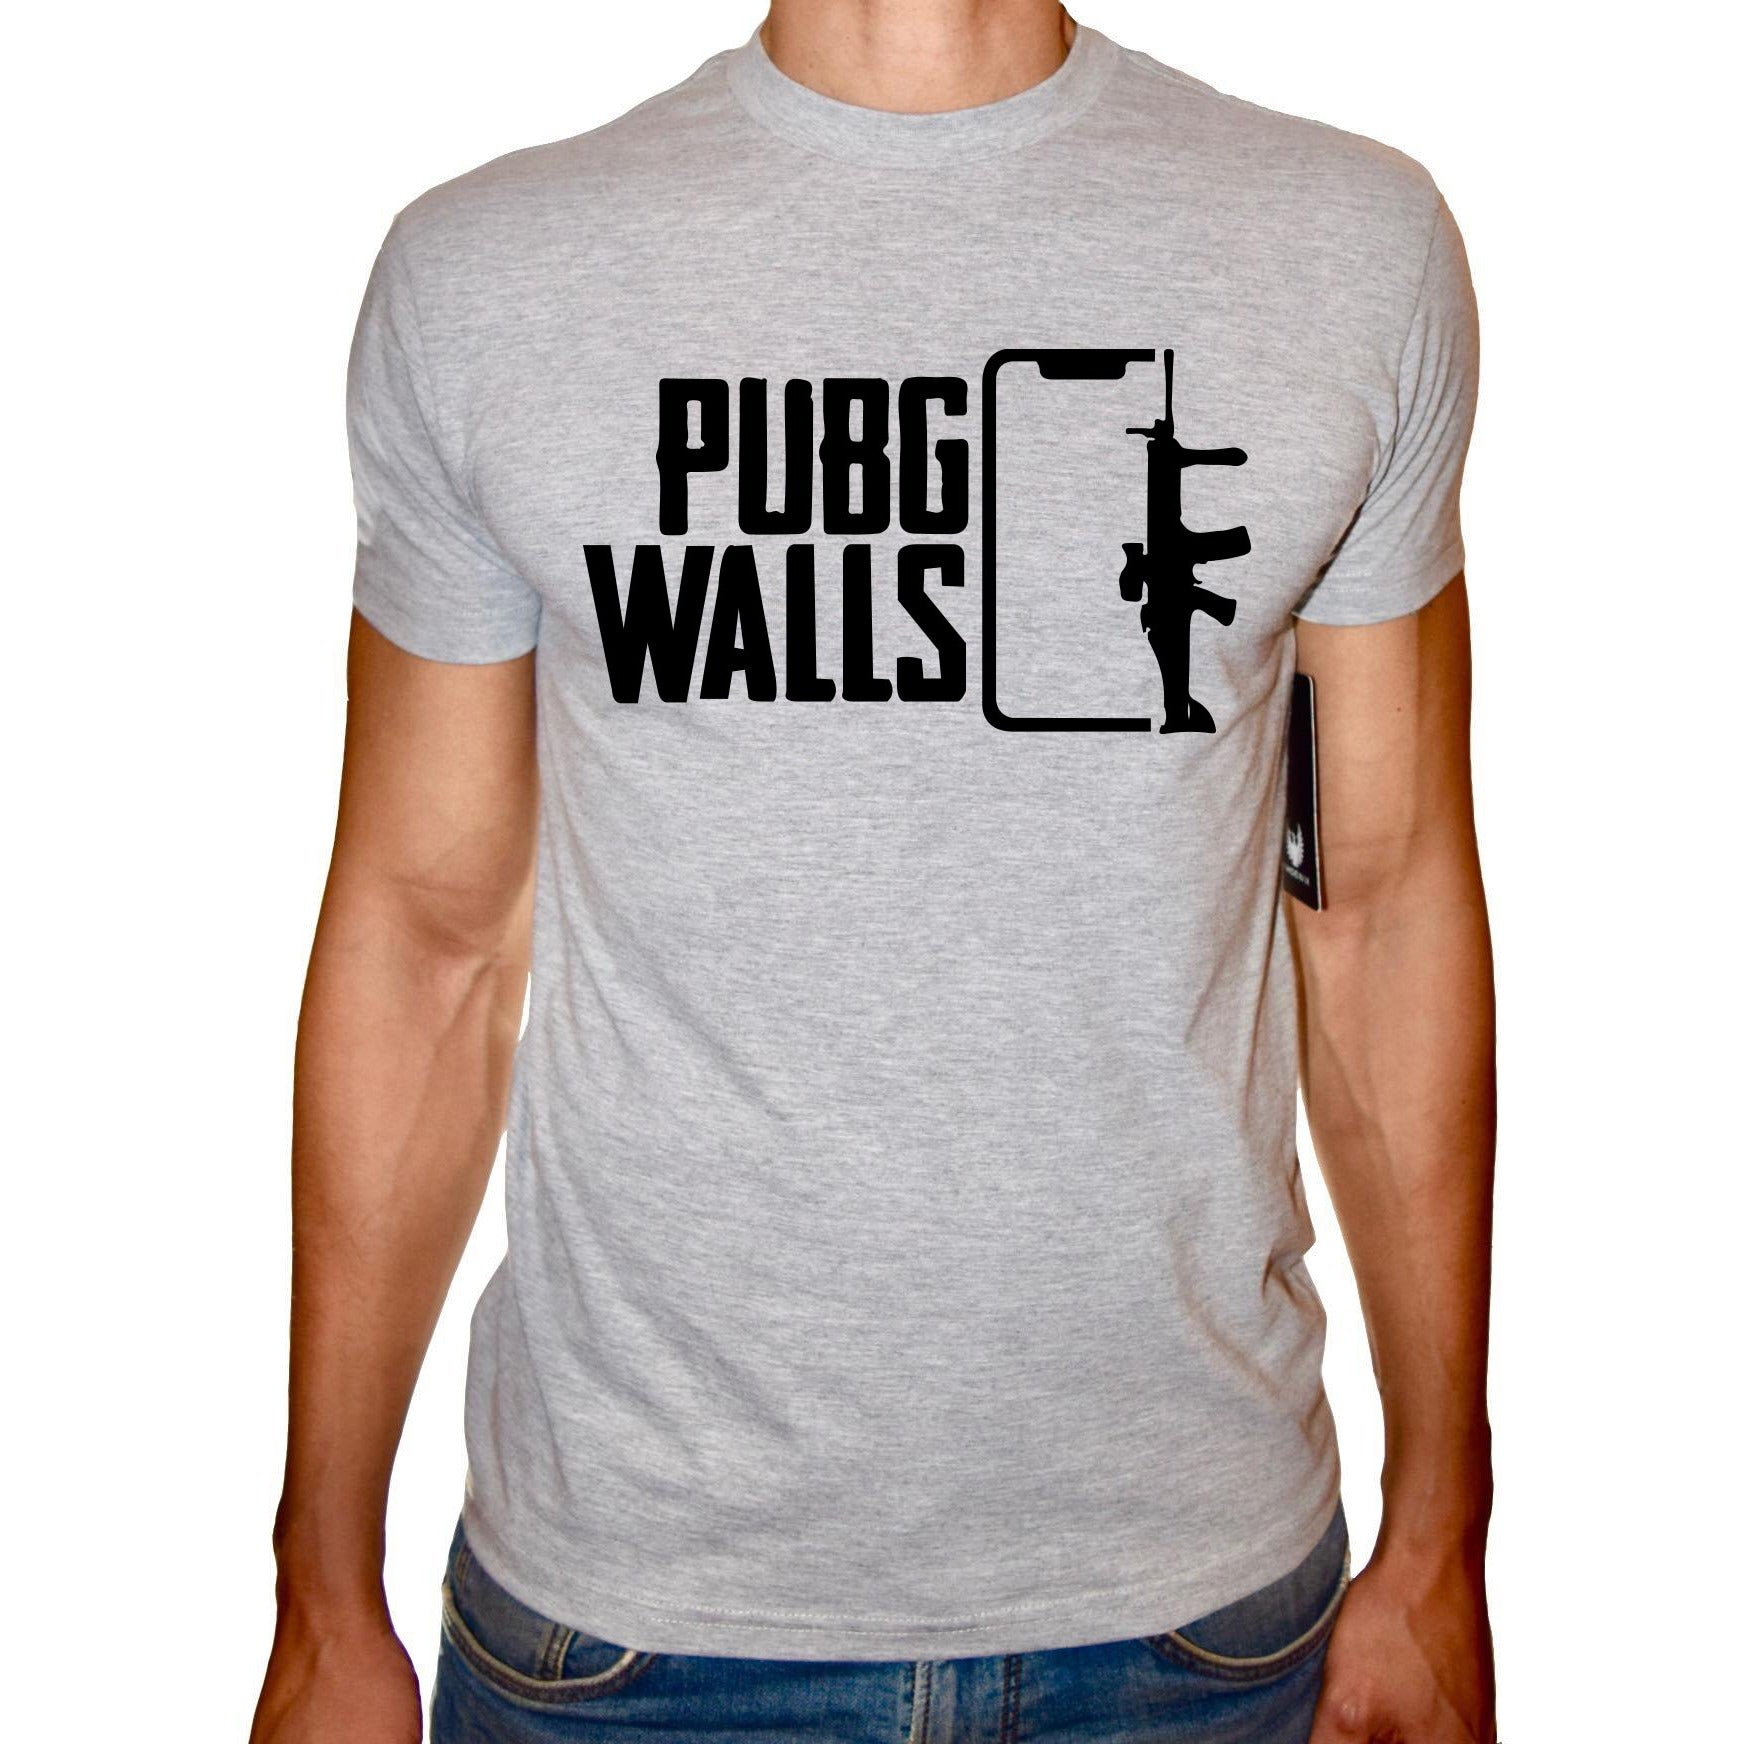 Phoenix GREY Round Neck Printed T-Shirt Men (PUBG WALLS)